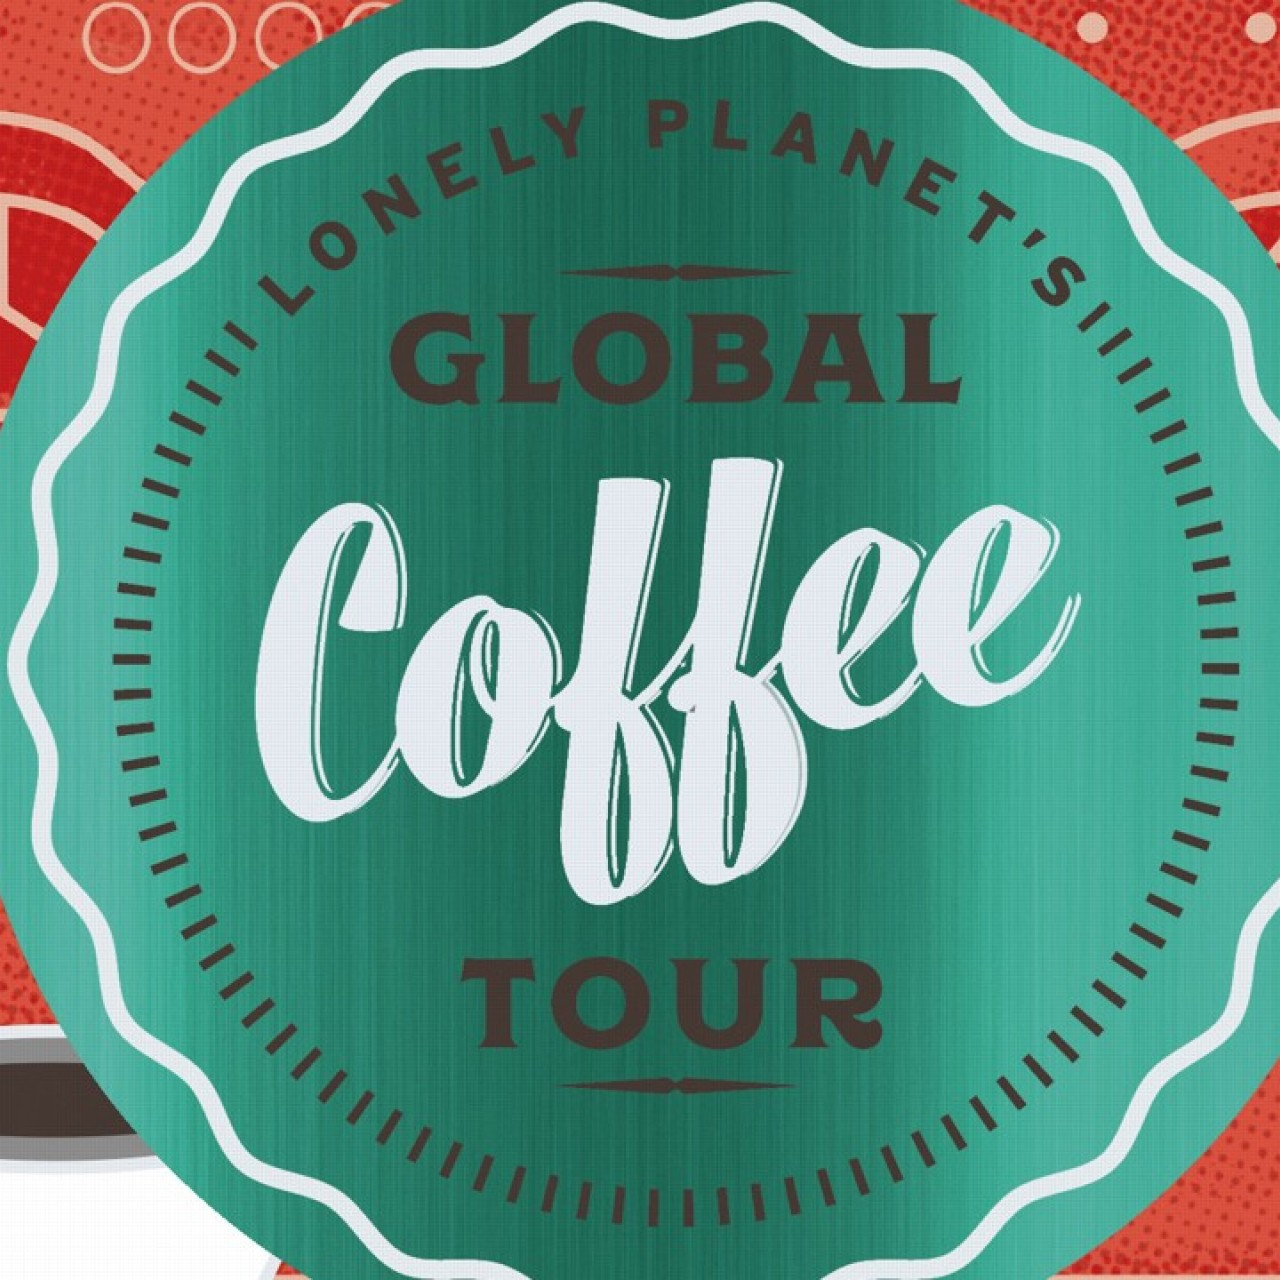 Coffee culture around the world: Lonely Planet takes an in-depth